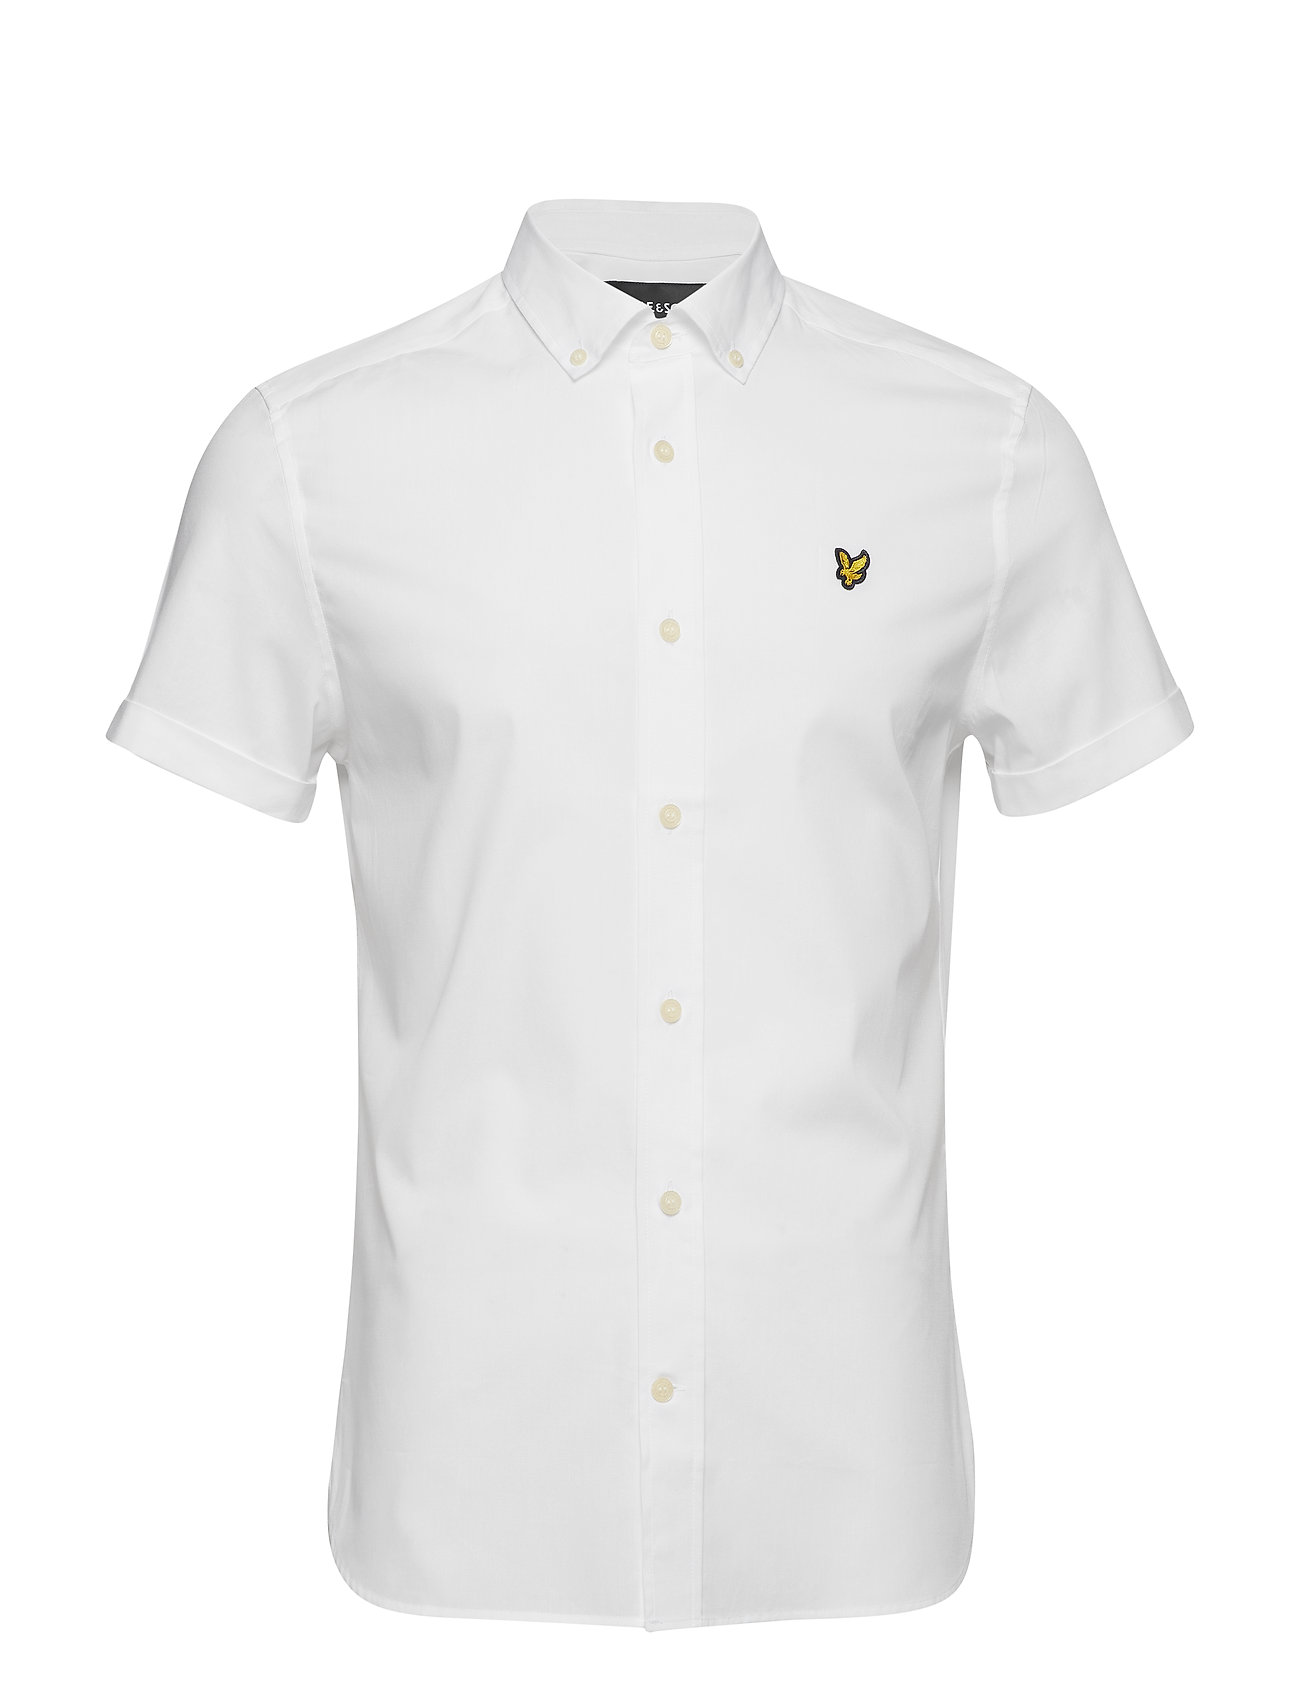 Lyle & Scott SS Slim Stretch Poplin Shirt - WHITE